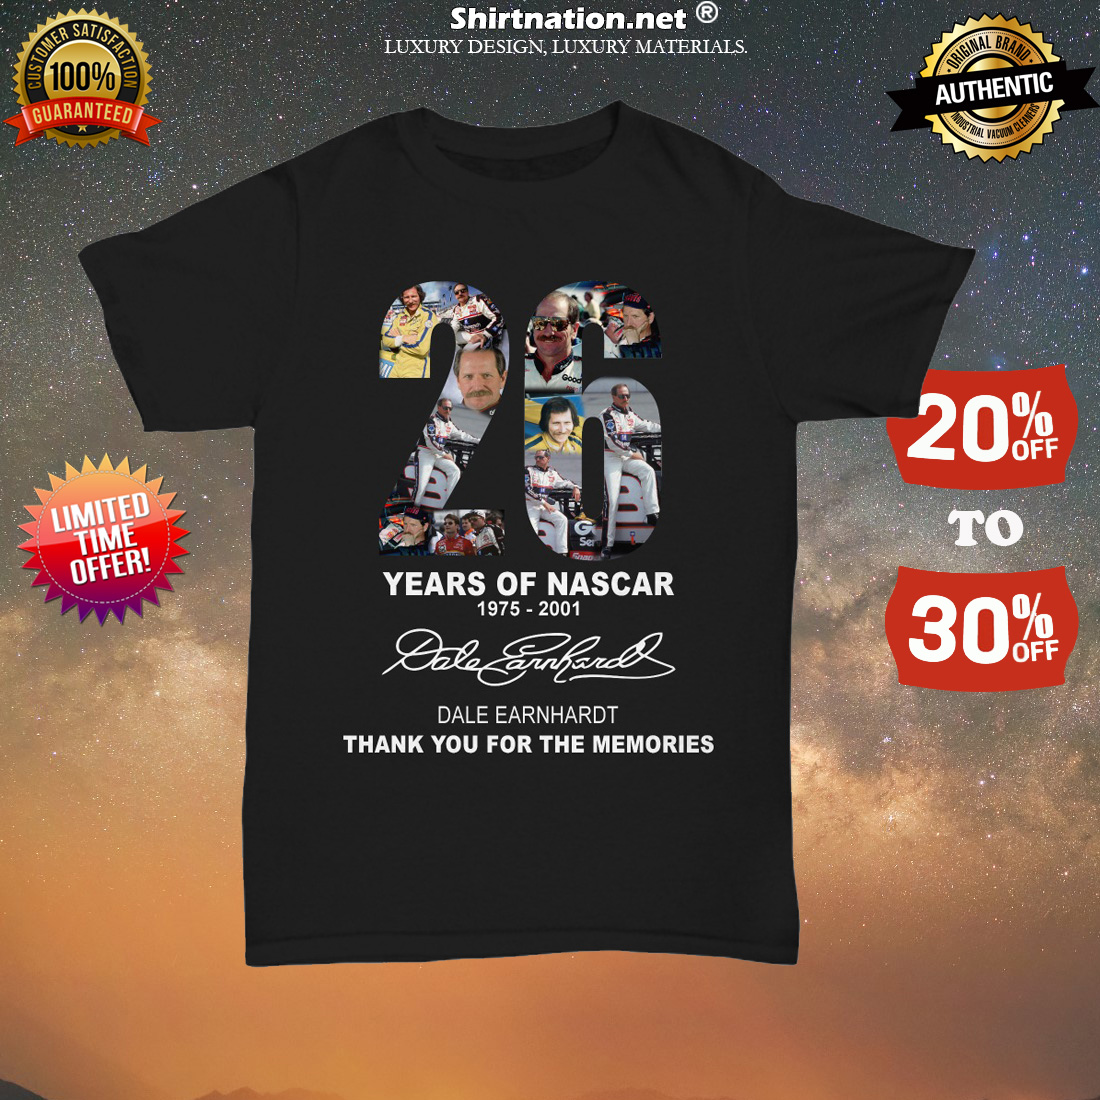 26 years of Nascar Dale Earnhardt thank you for the memories unisex tee shirt